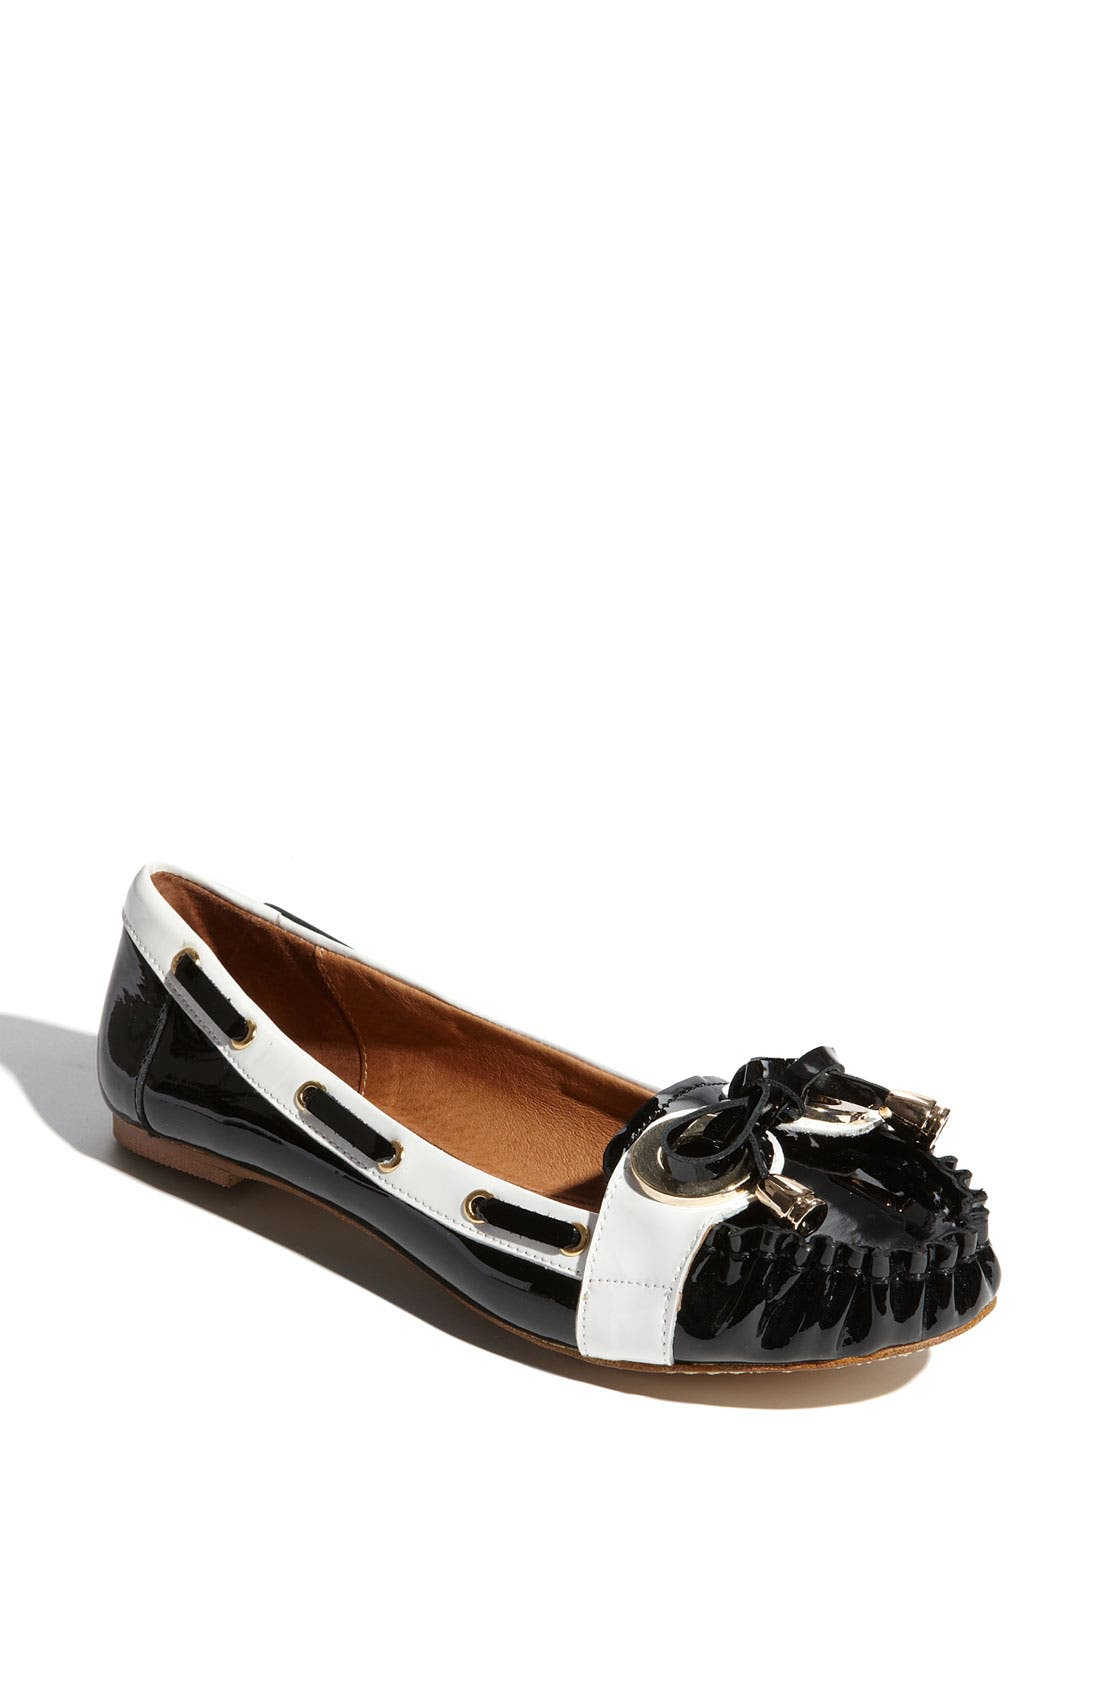 Main Image - Jeffrey Campbell 'Portal' Loafer